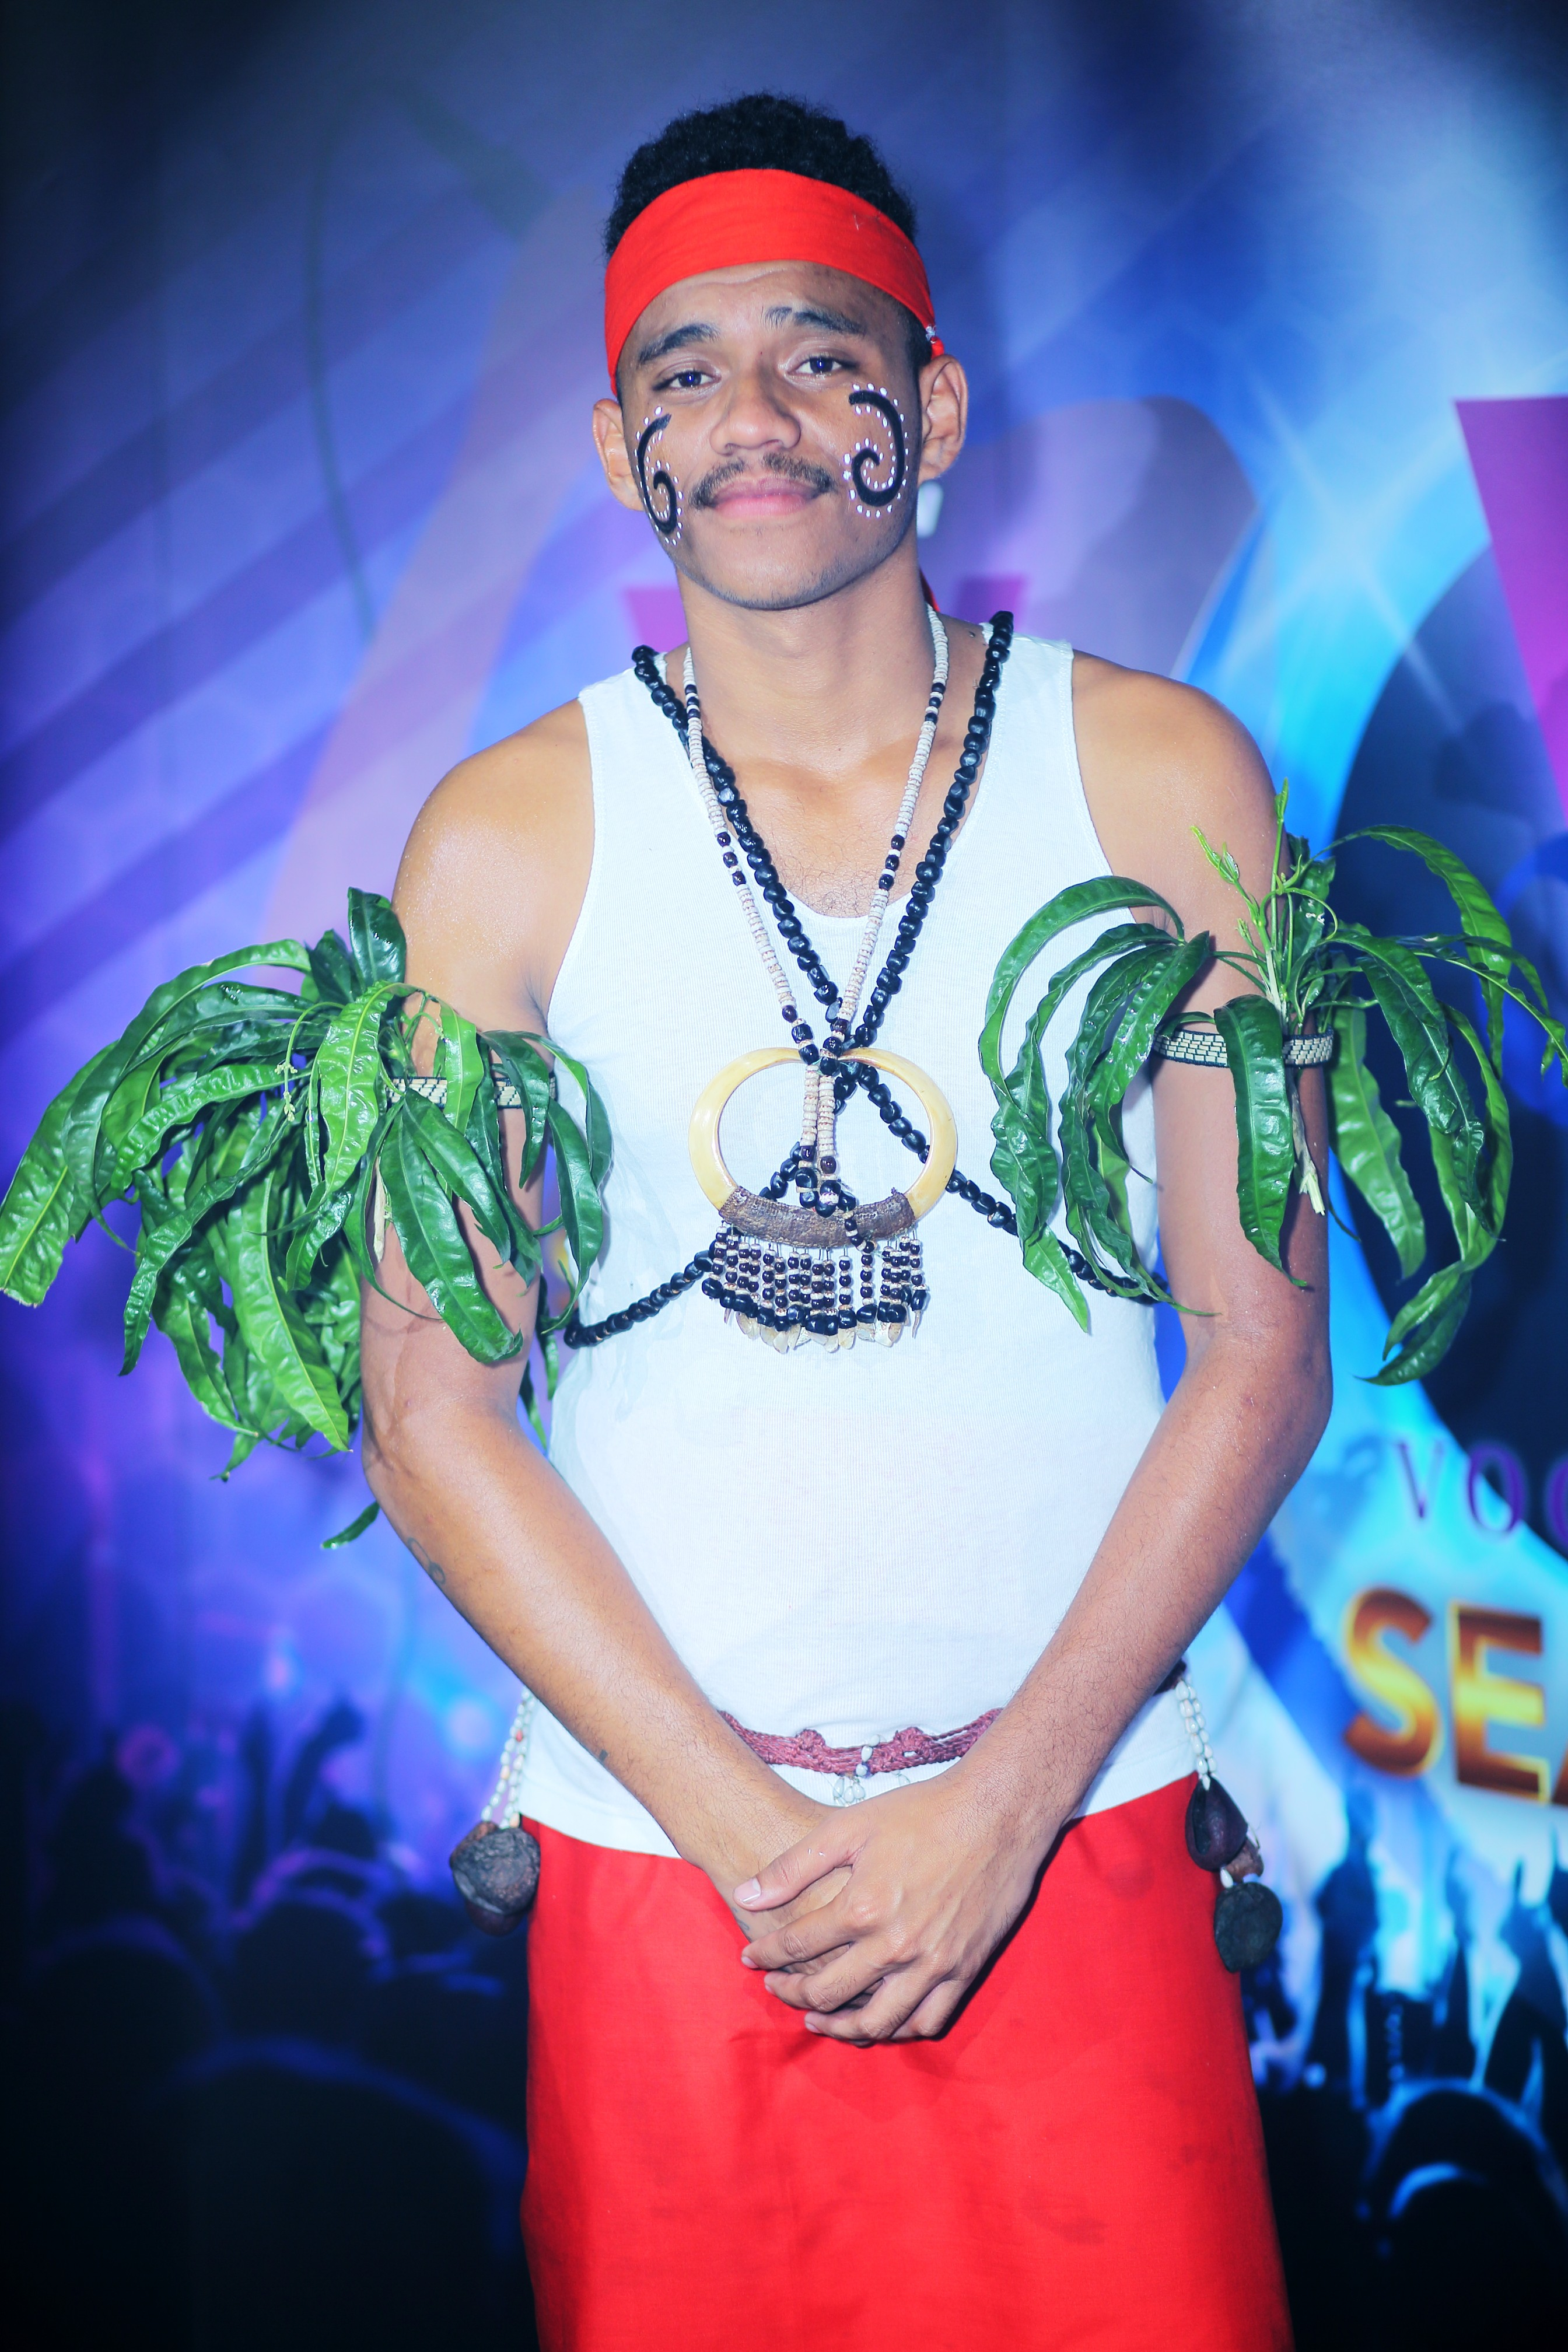 One of seven Port Moresby contestants is young Emmanuel Ola. Emmanuel is 20 years old and hails from Keapara in the Central province. He loves listening to RnB and says his musicial idol is Ragga Siai.